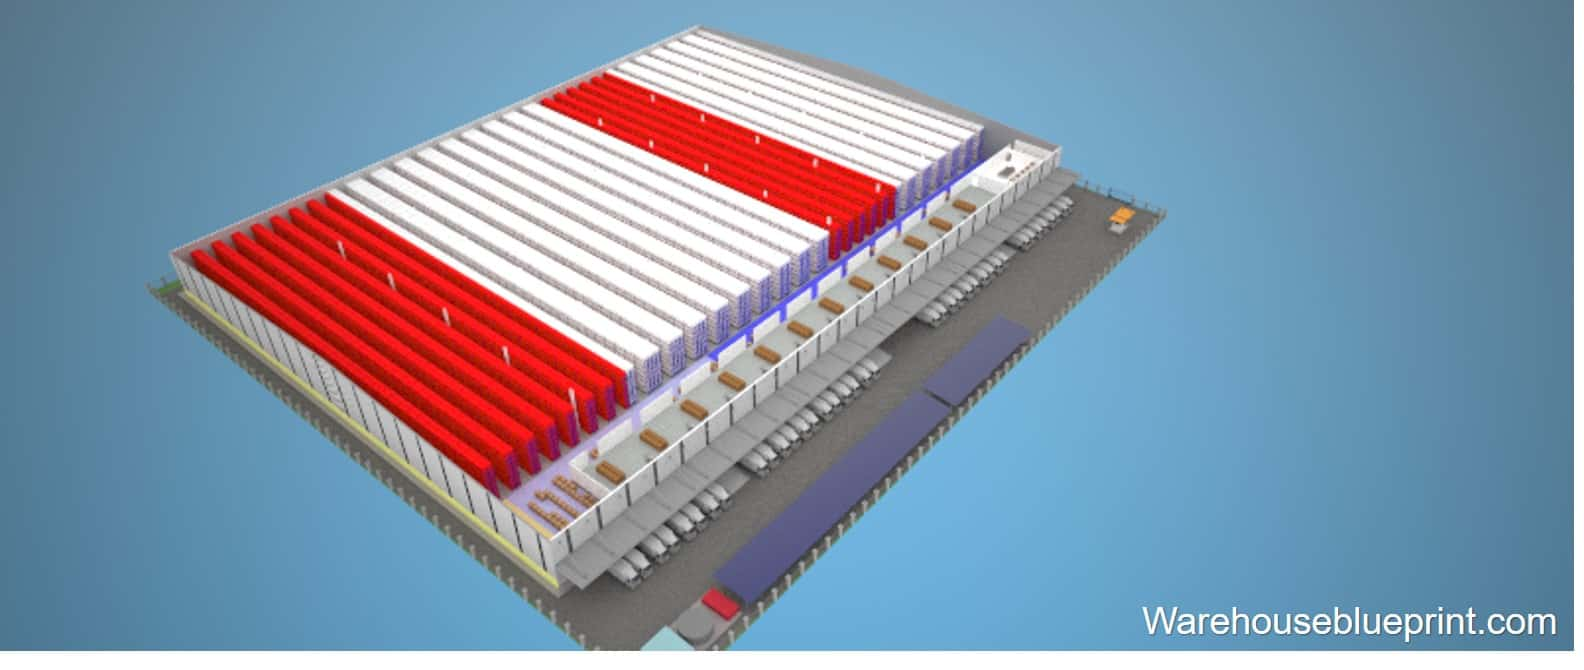 Warehouse Layout 3 - rendered